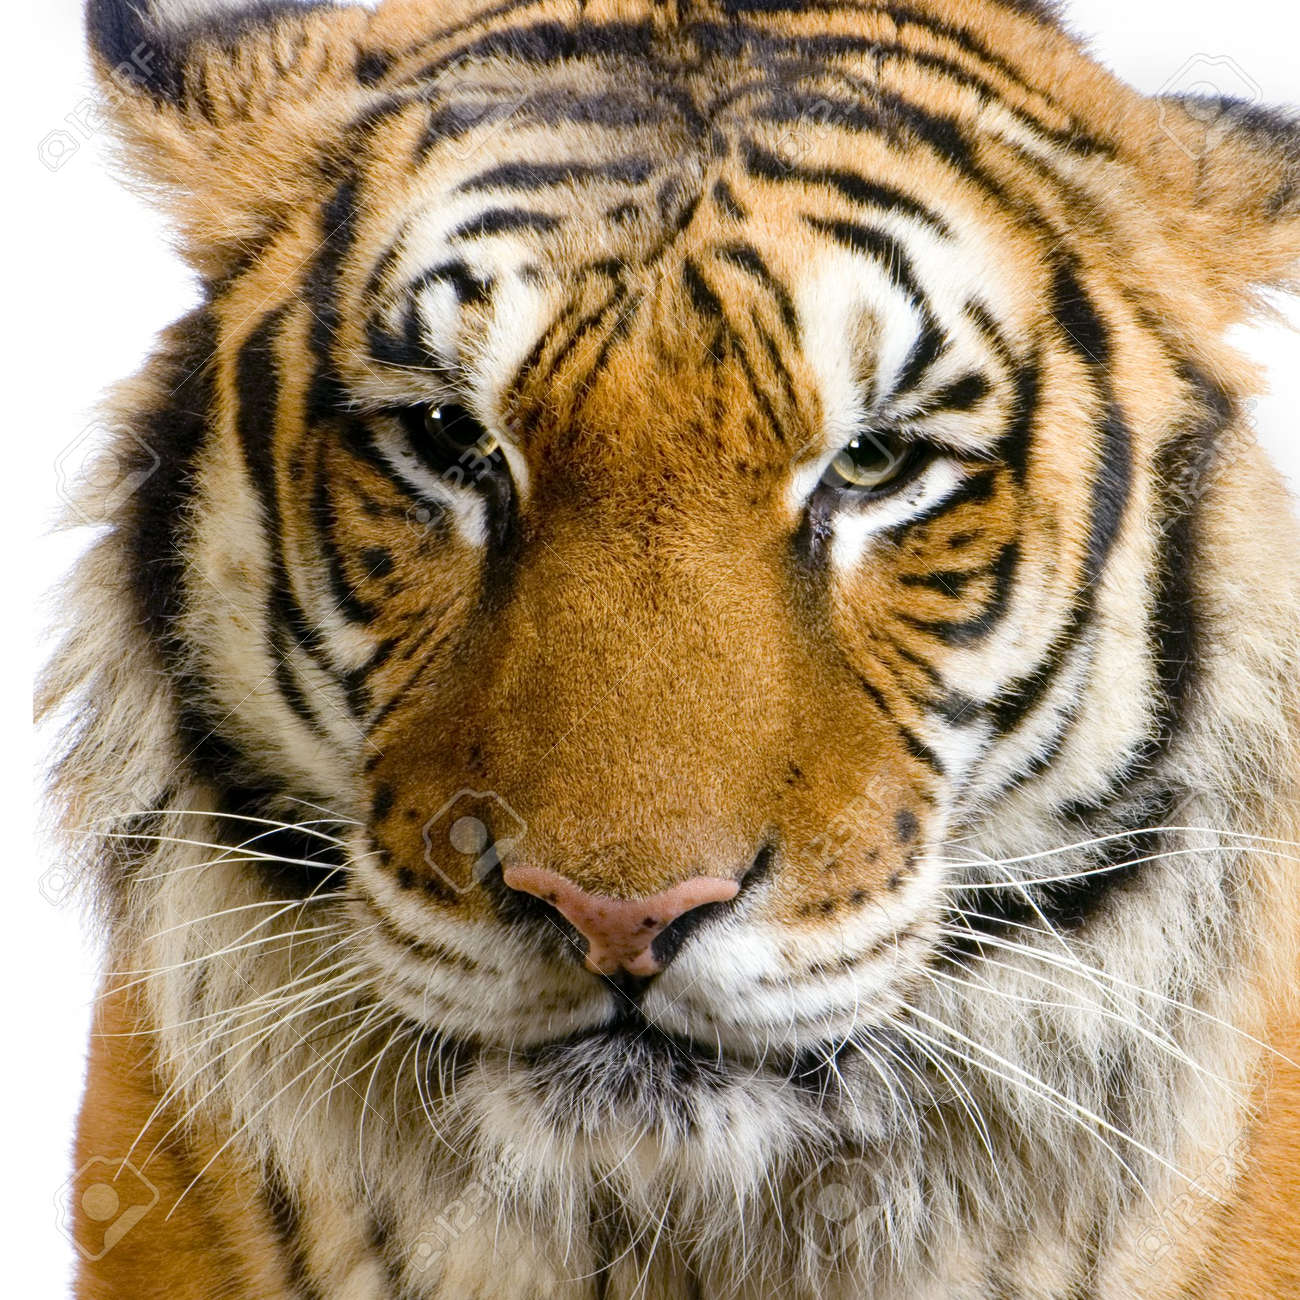 close up on a tiger s face in front of a white background all